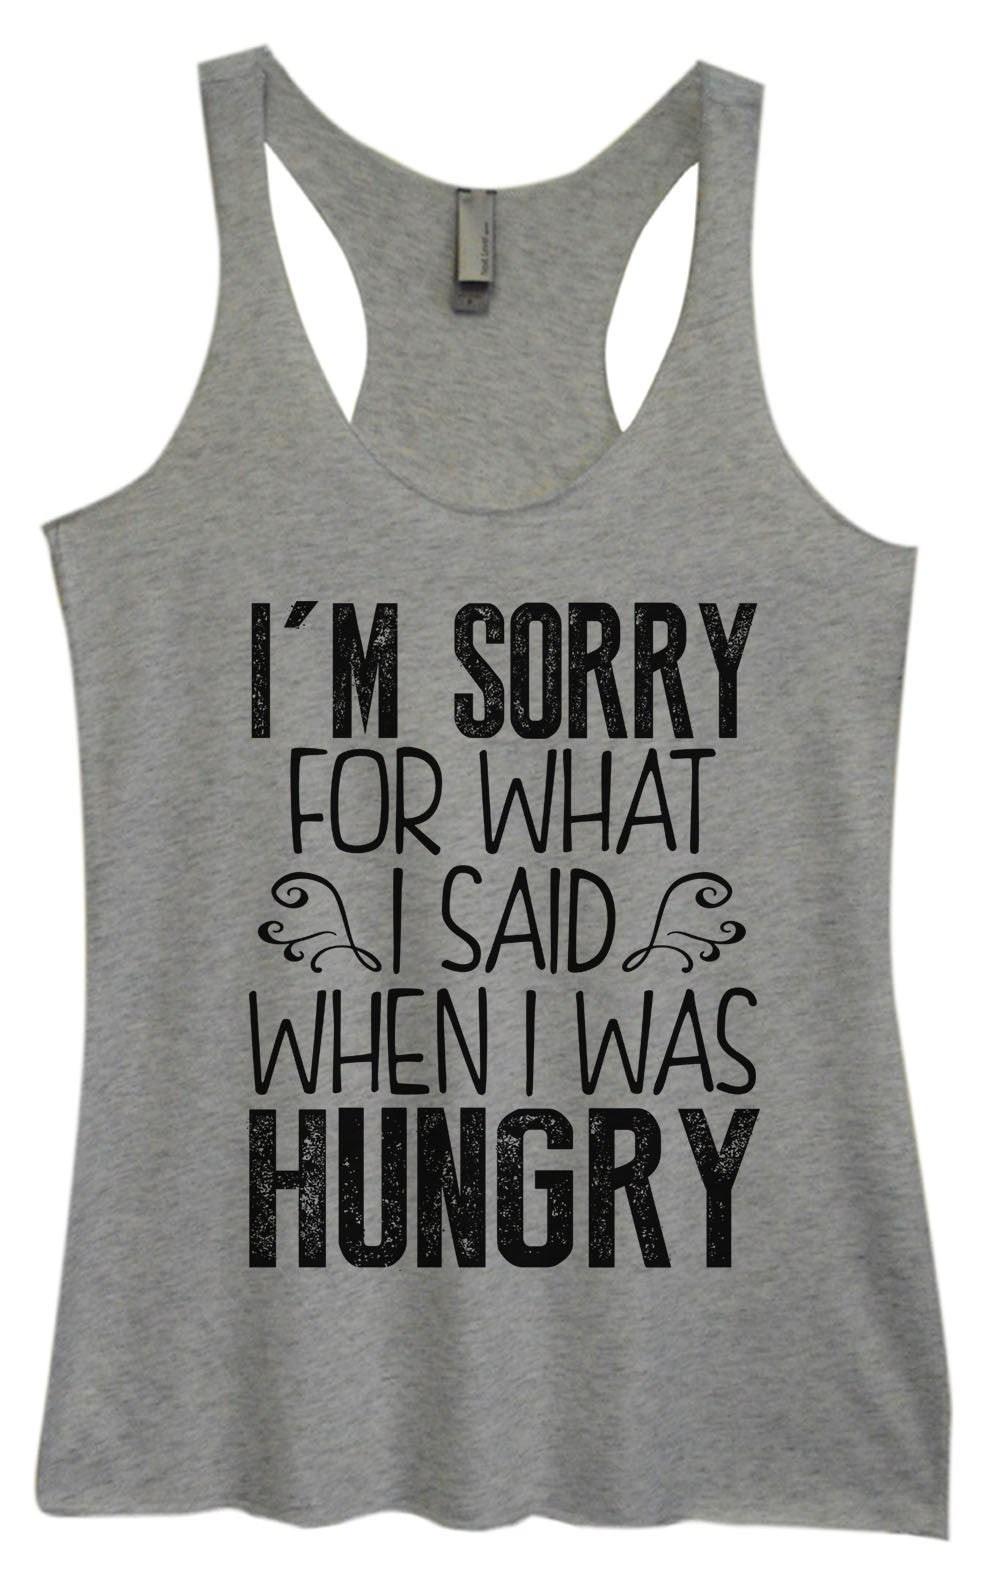 Womens Fashion Triblend Tank Top - I'm Sorry For What I Said When I Was Hungry - Tri-952 - Funny Shirts Tank Tops Burnouts and Triblends  - 1